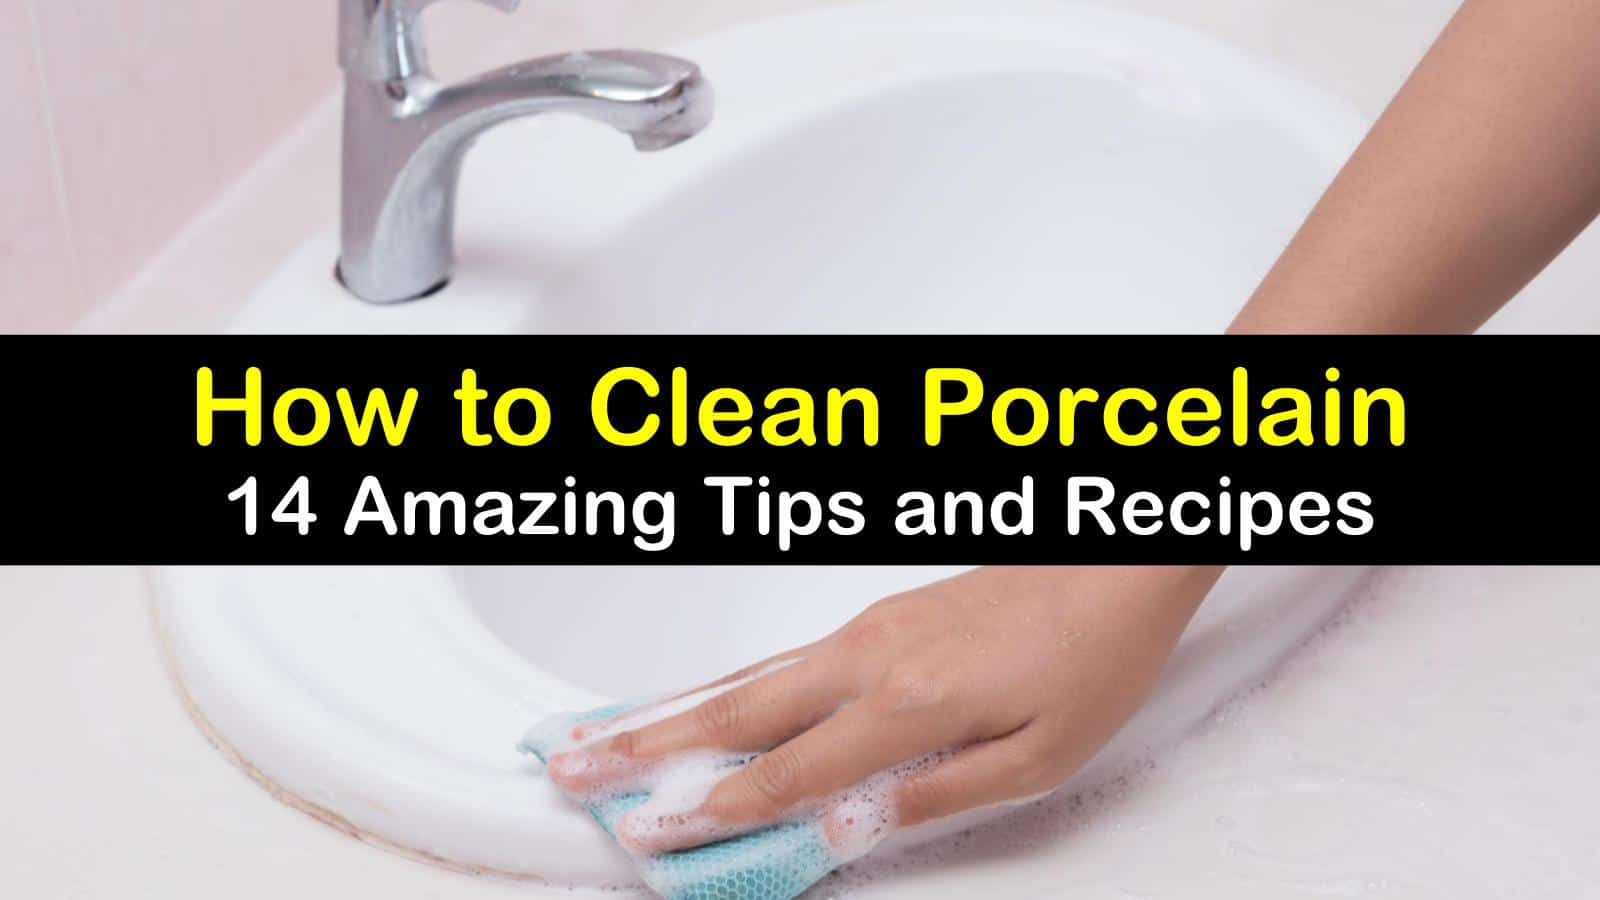 8 Amazing Ways to Clean Porcelain